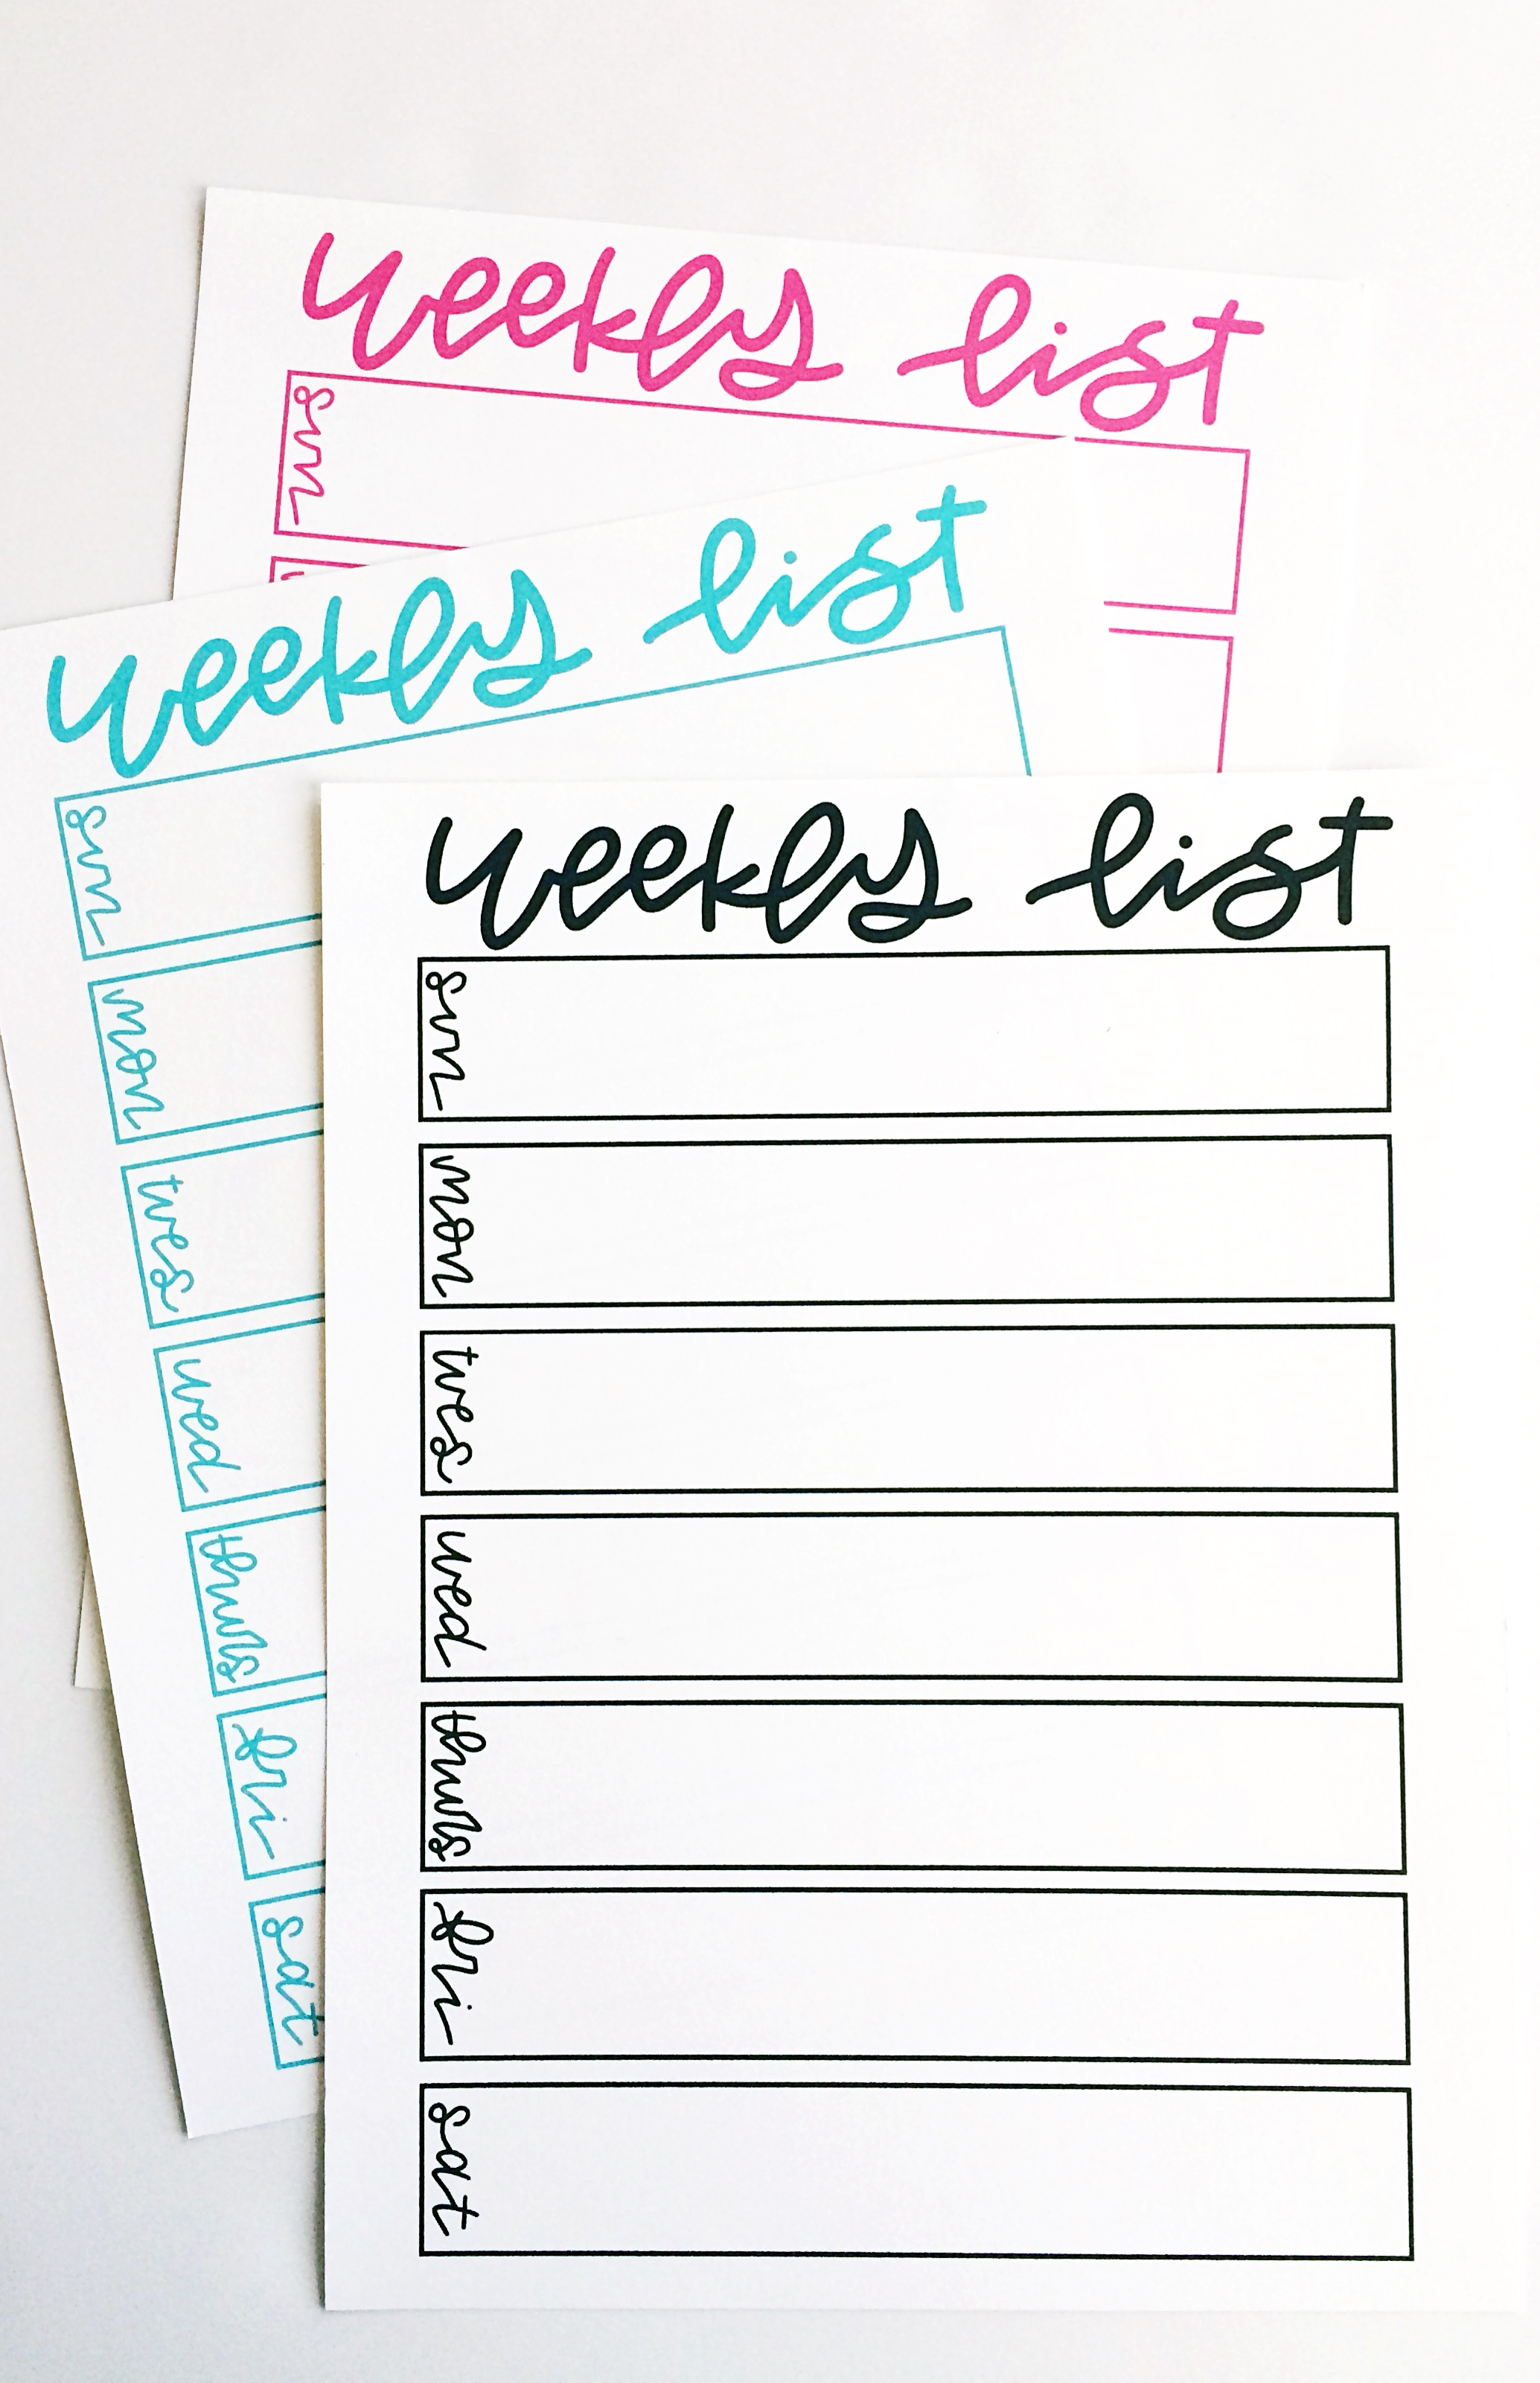 FREE Weekly Calendar List Printable from @thechildatheartblog